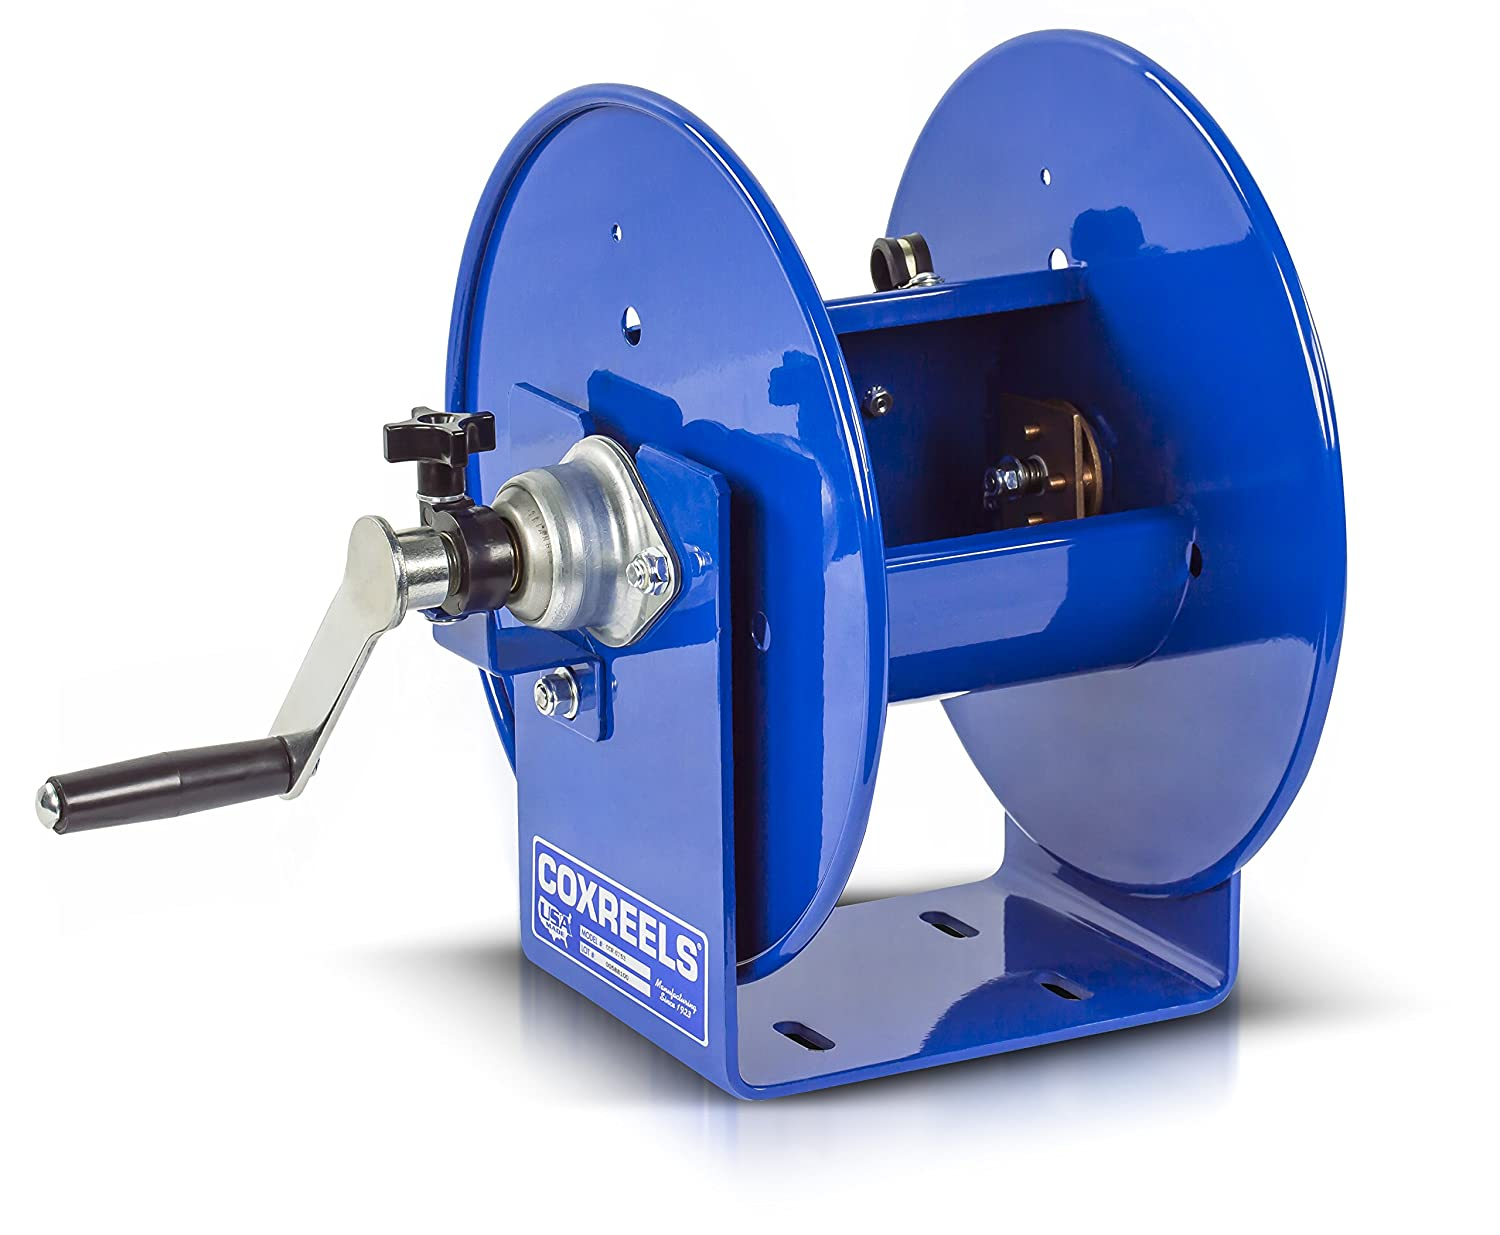 Compact Hand Crank Welding Cable Reel COXREELS 112WCL-6-02